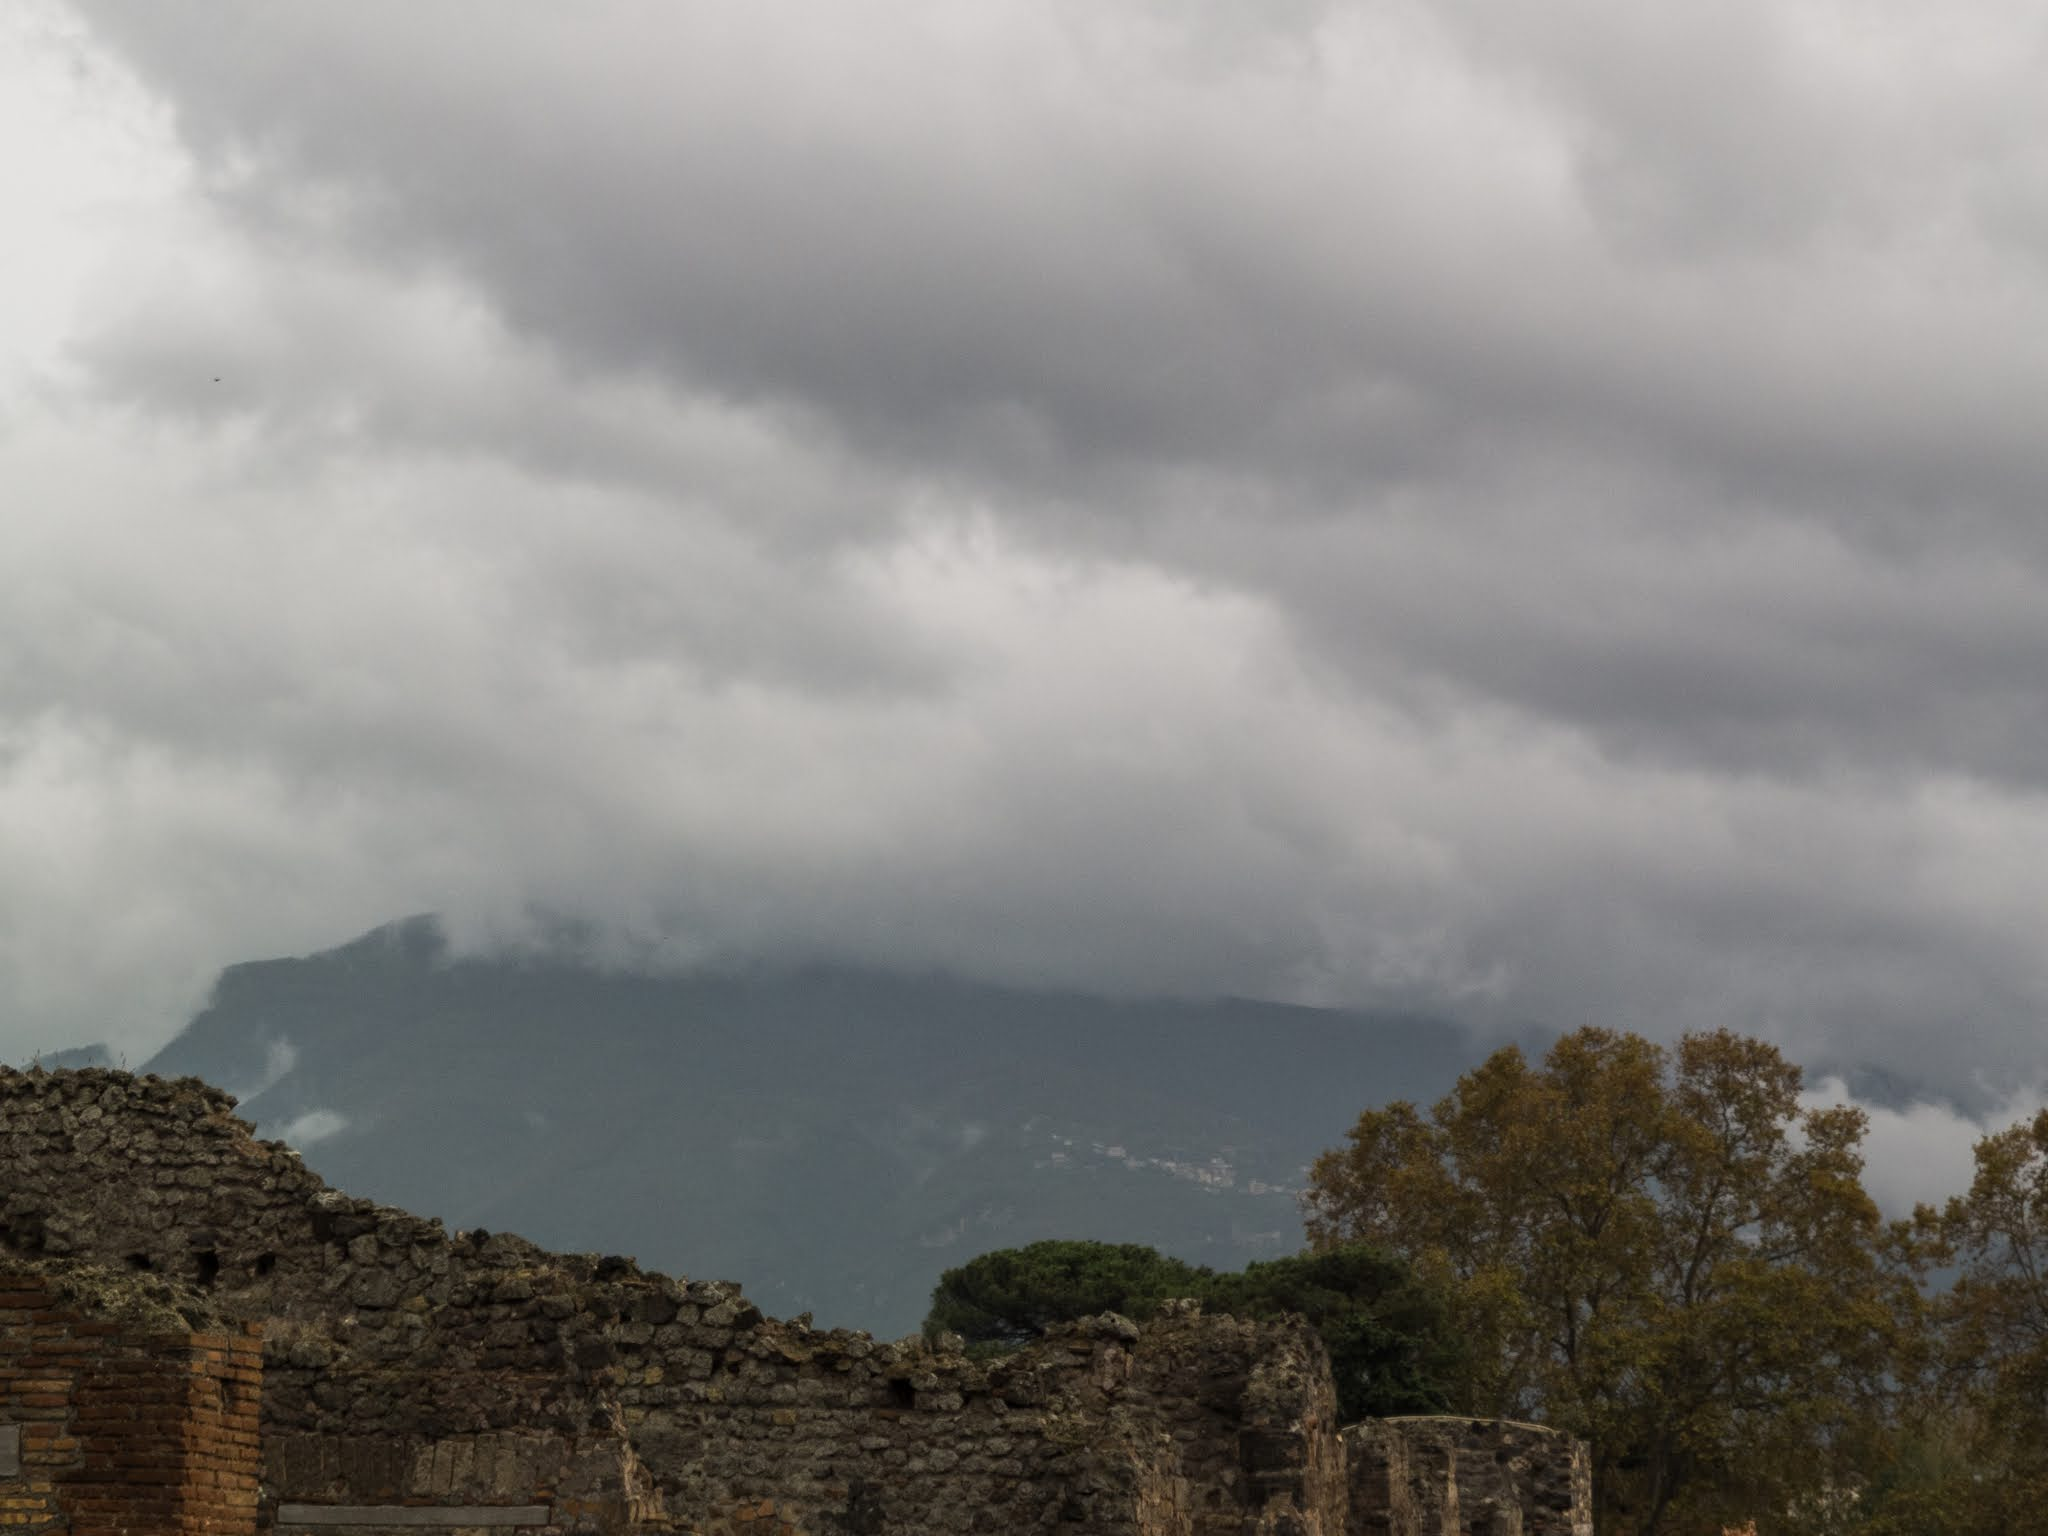 View of ancient Pompeii and Mount Vesuvius on a cloudy day.